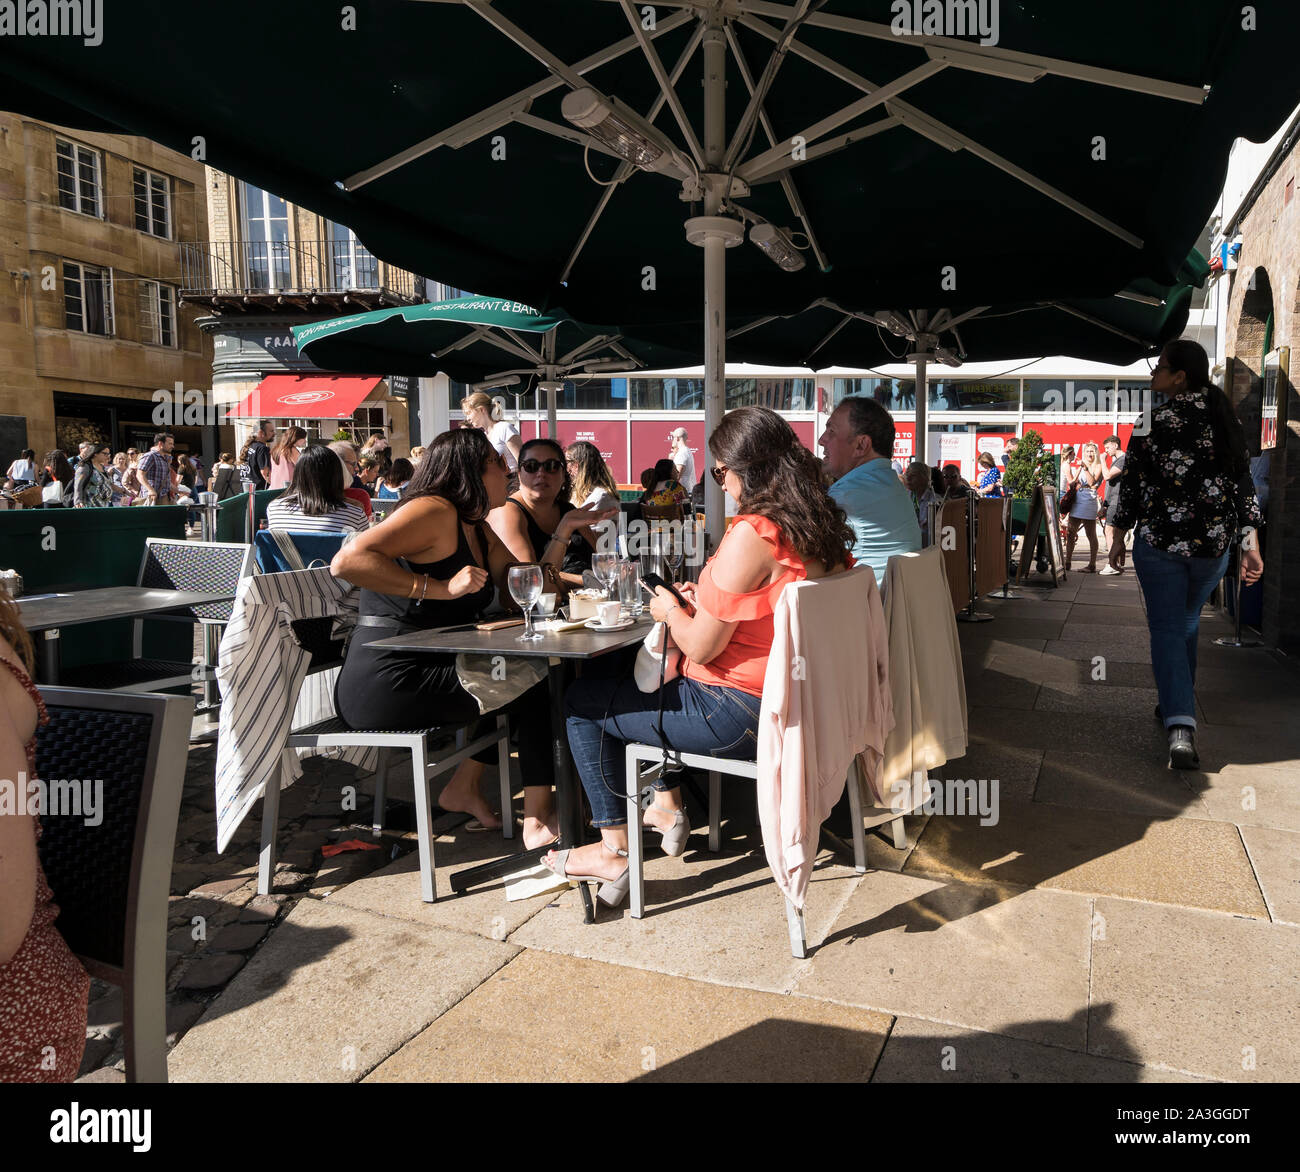 people-dining-al-fresco-at-city-centre-restaurant-market-hill-cambridge-2019-2A3GGDT.jpg